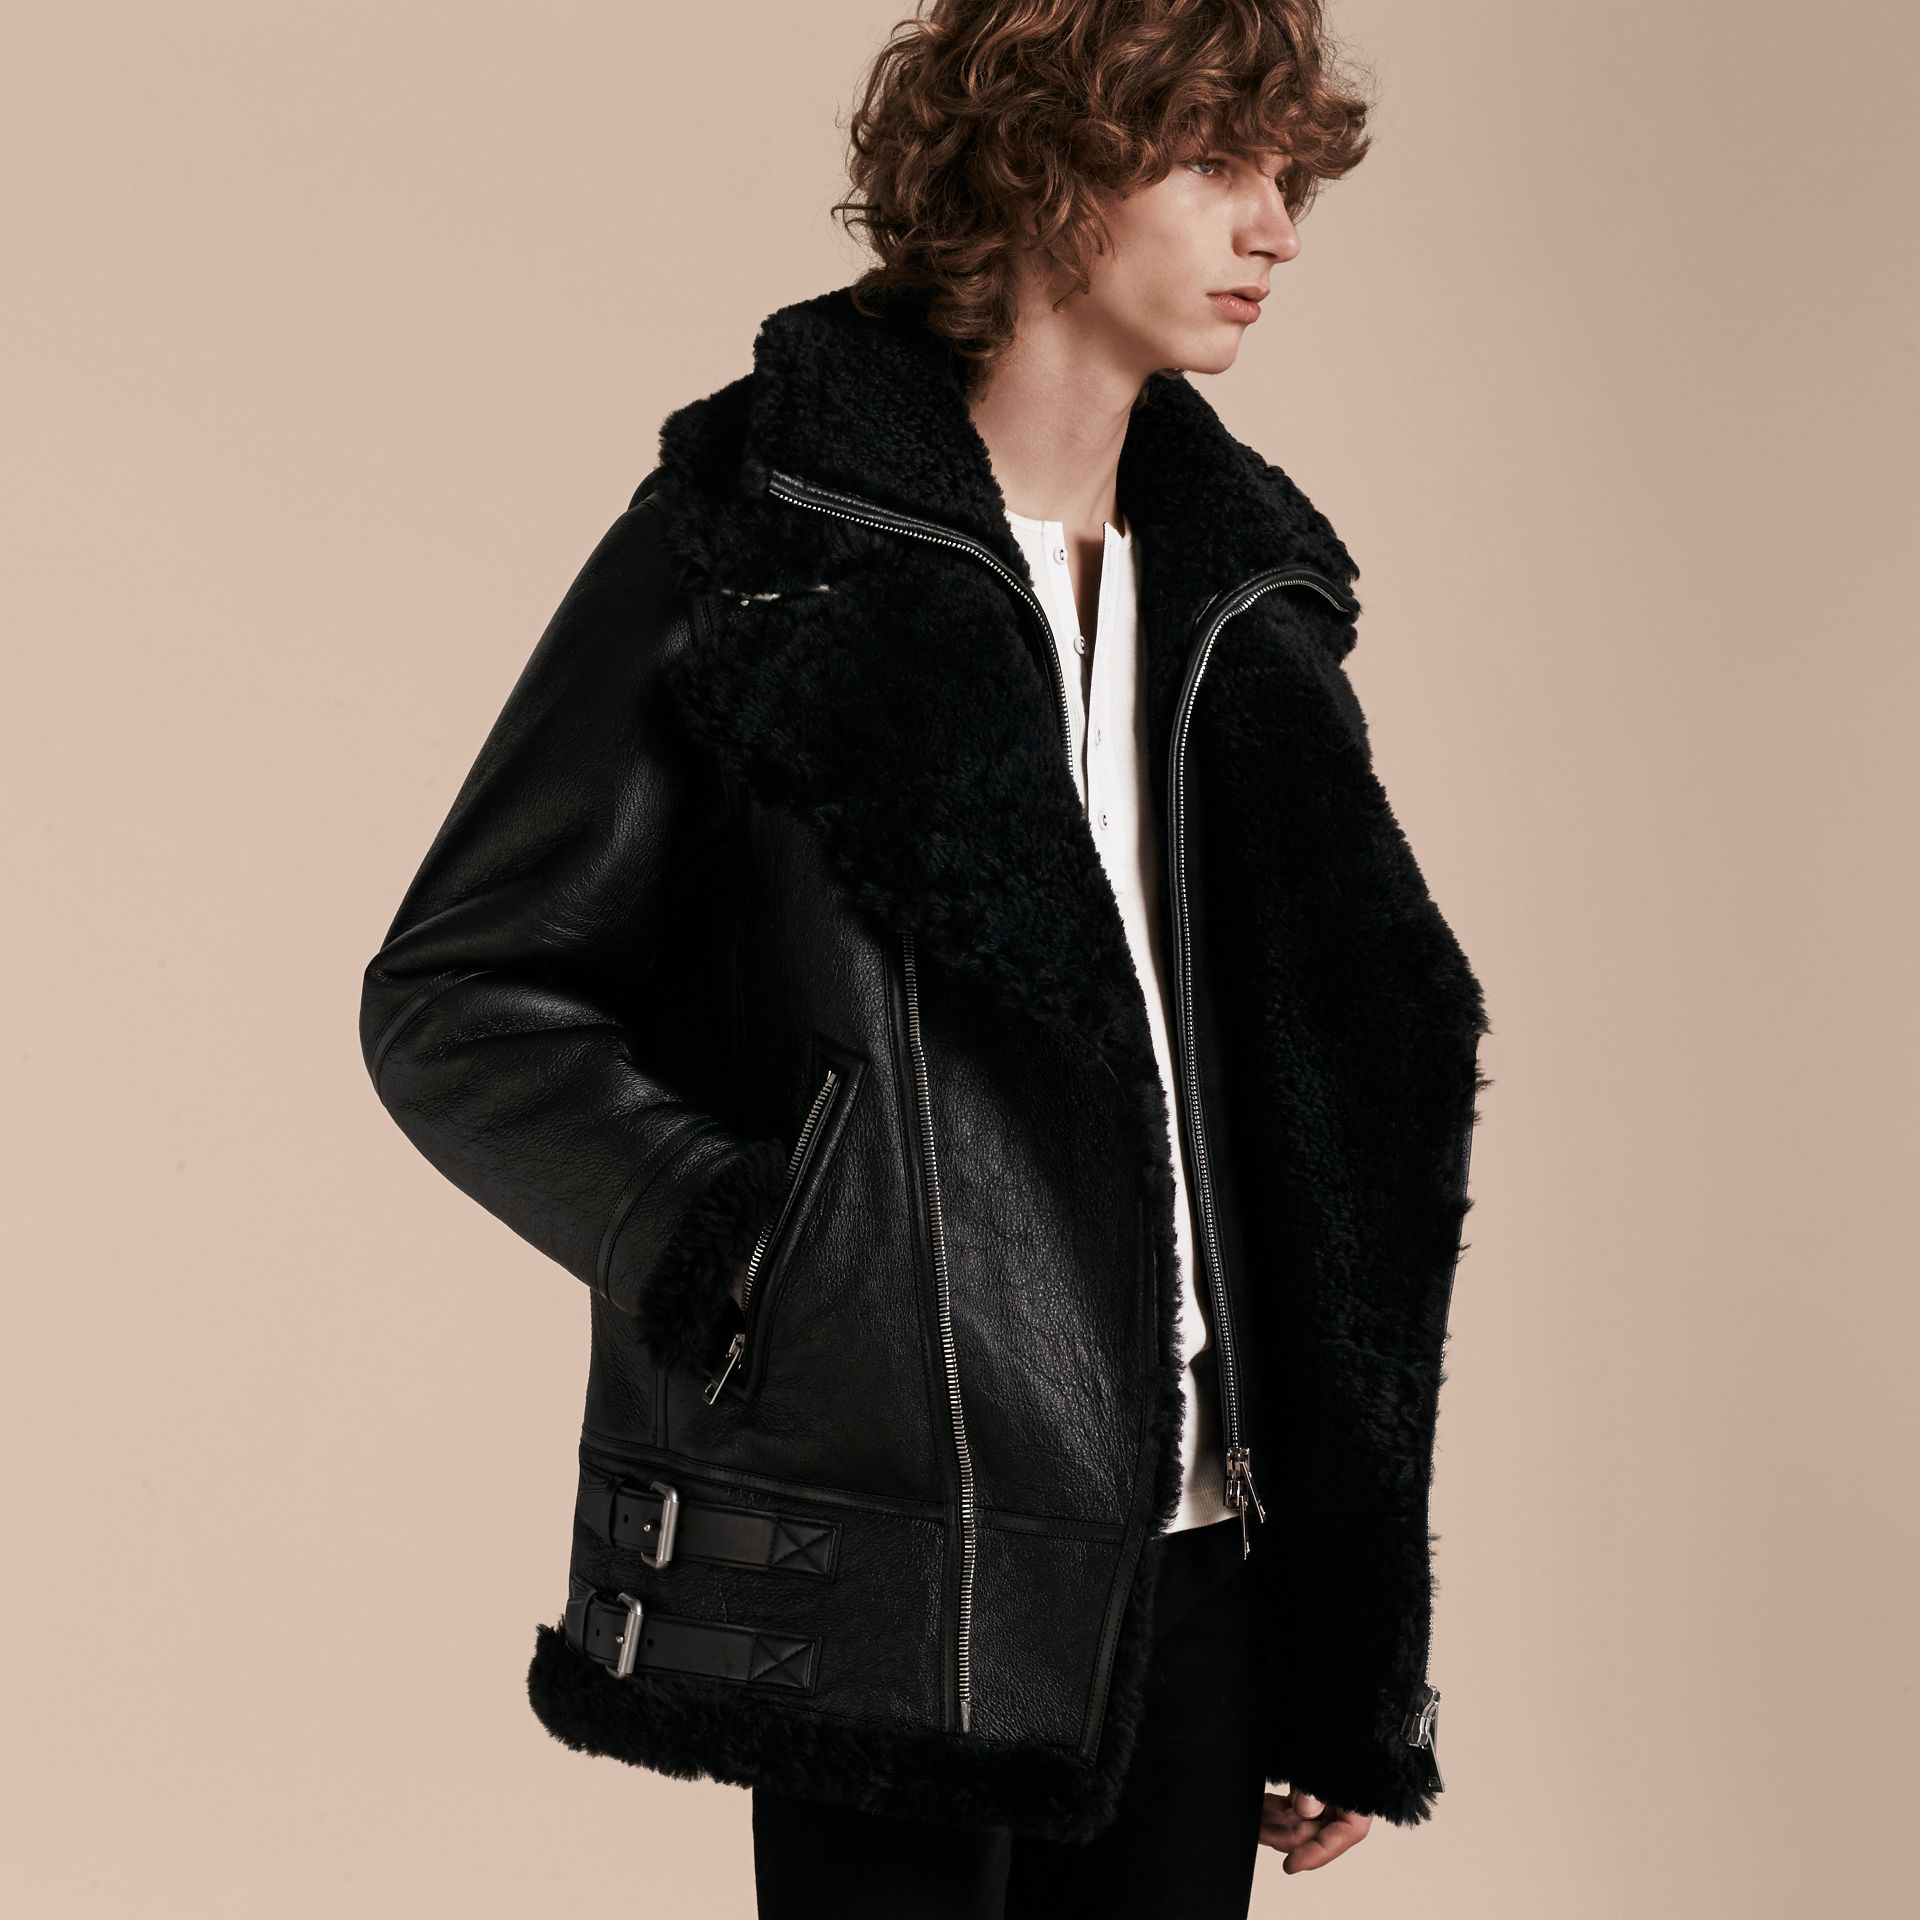 Black Long-line Shearling Aviator Jacket with Zip-out Bib - gallery image 7